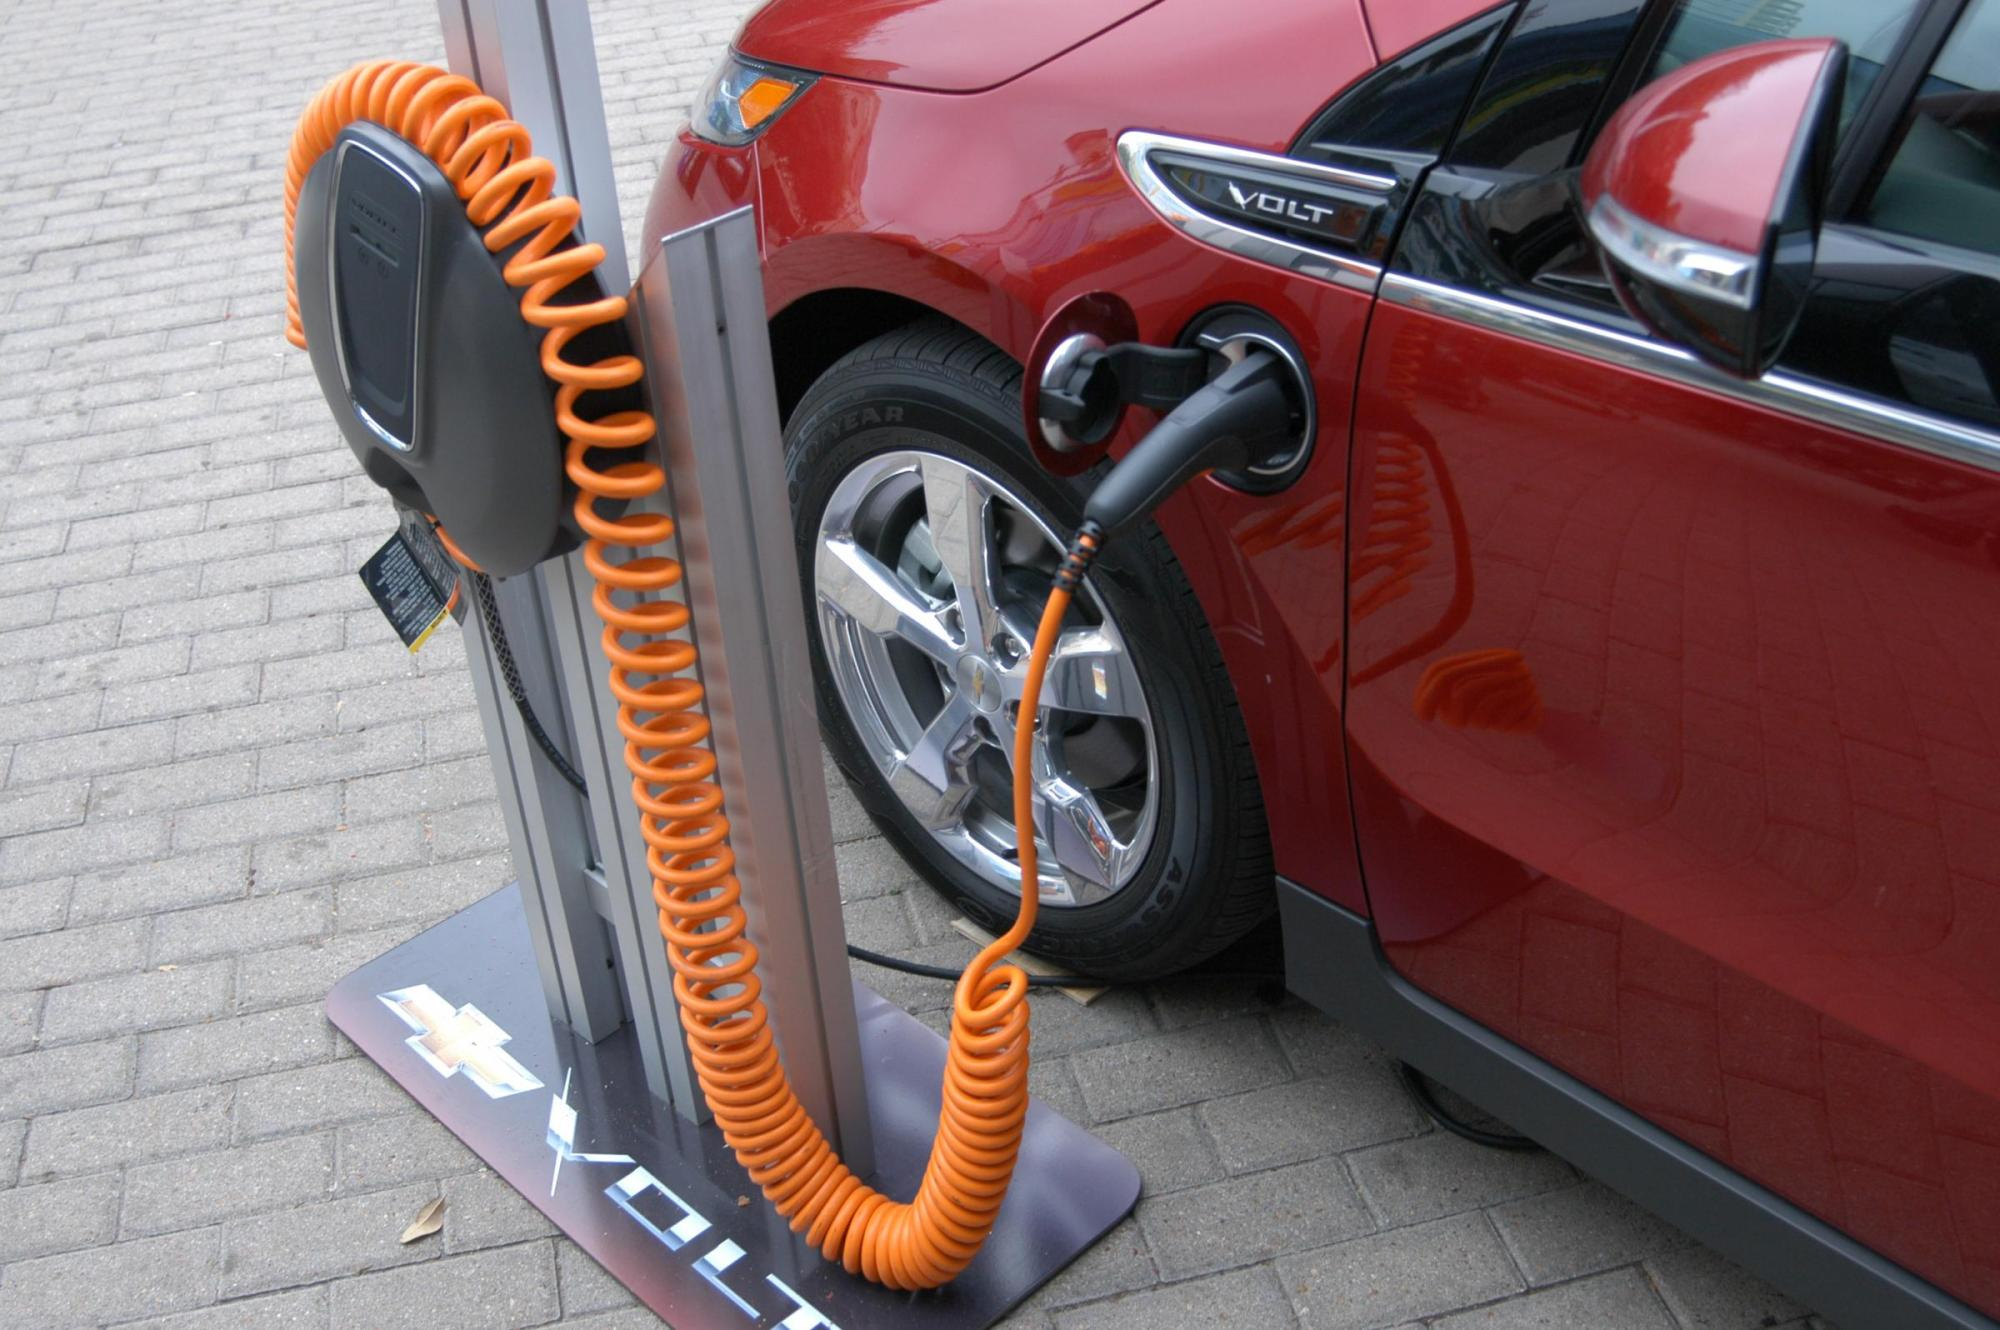 hight resolution of a chevy volt charging station on display outside the austin convention center during sxsw 2011